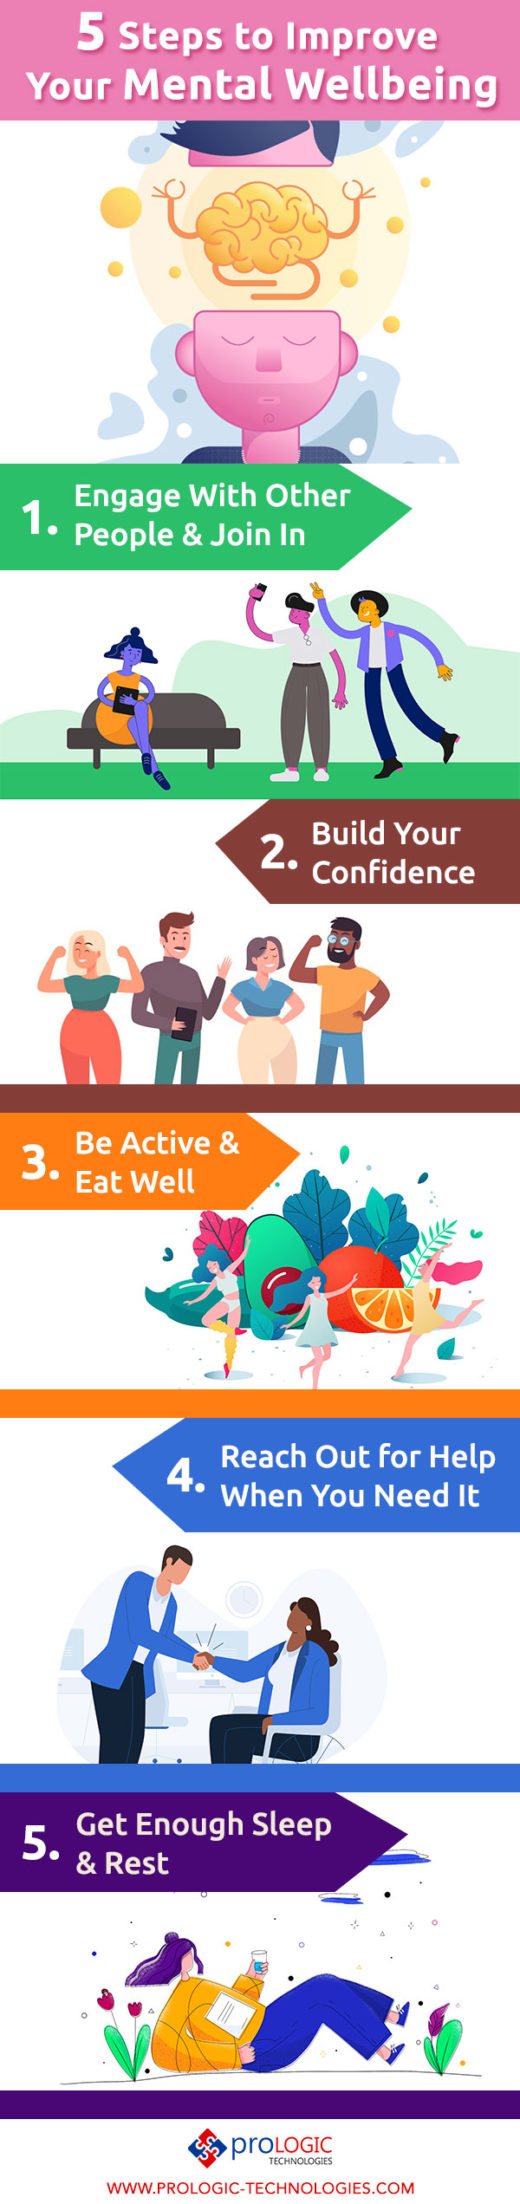 5 Steps to Improve Your Mental Wellbeing